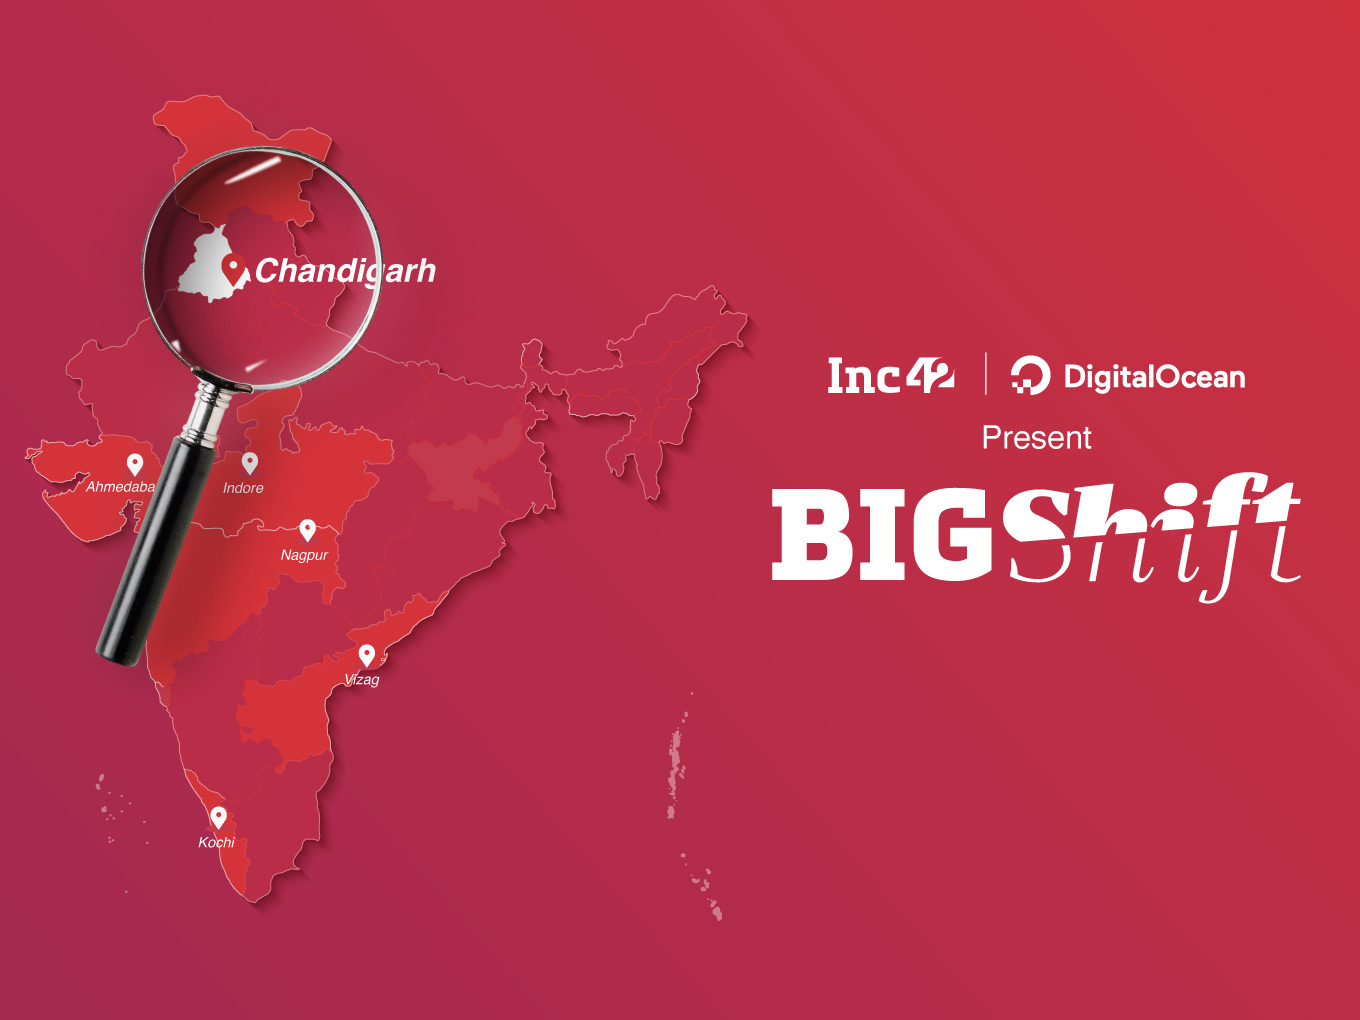 India's Next Big Startup Hub! BIGShift Returns To Celebrate Chandigarh's Startup Ecosystem